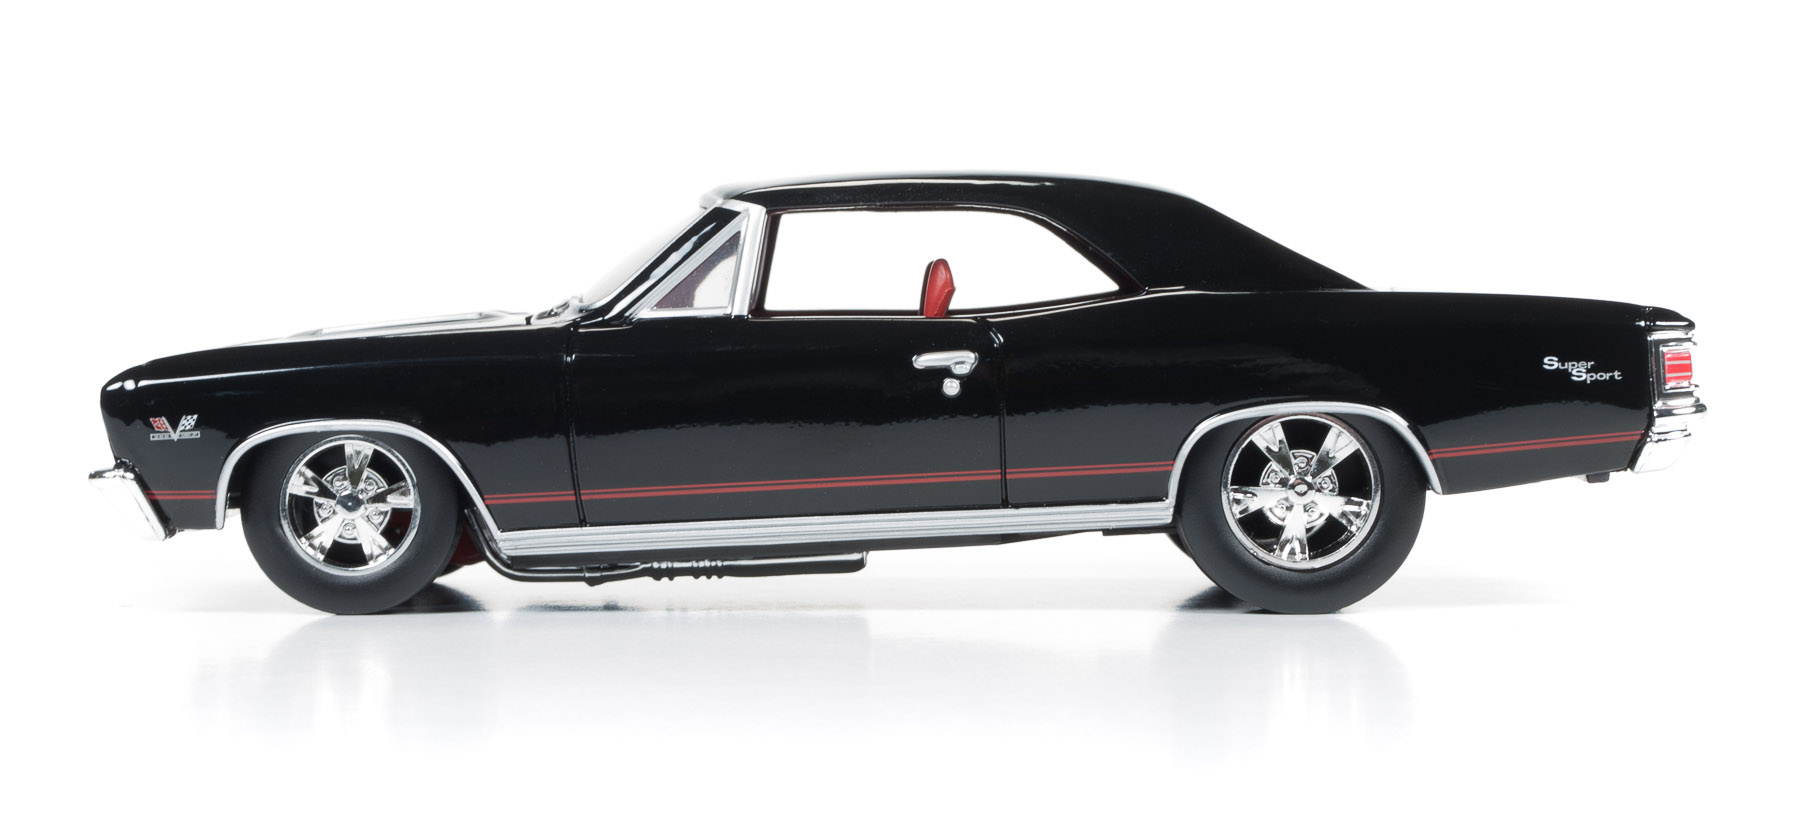 1967 chevrolet chevelle ss round2. Black Bedroom Furniture Sets. Home Design Ideas